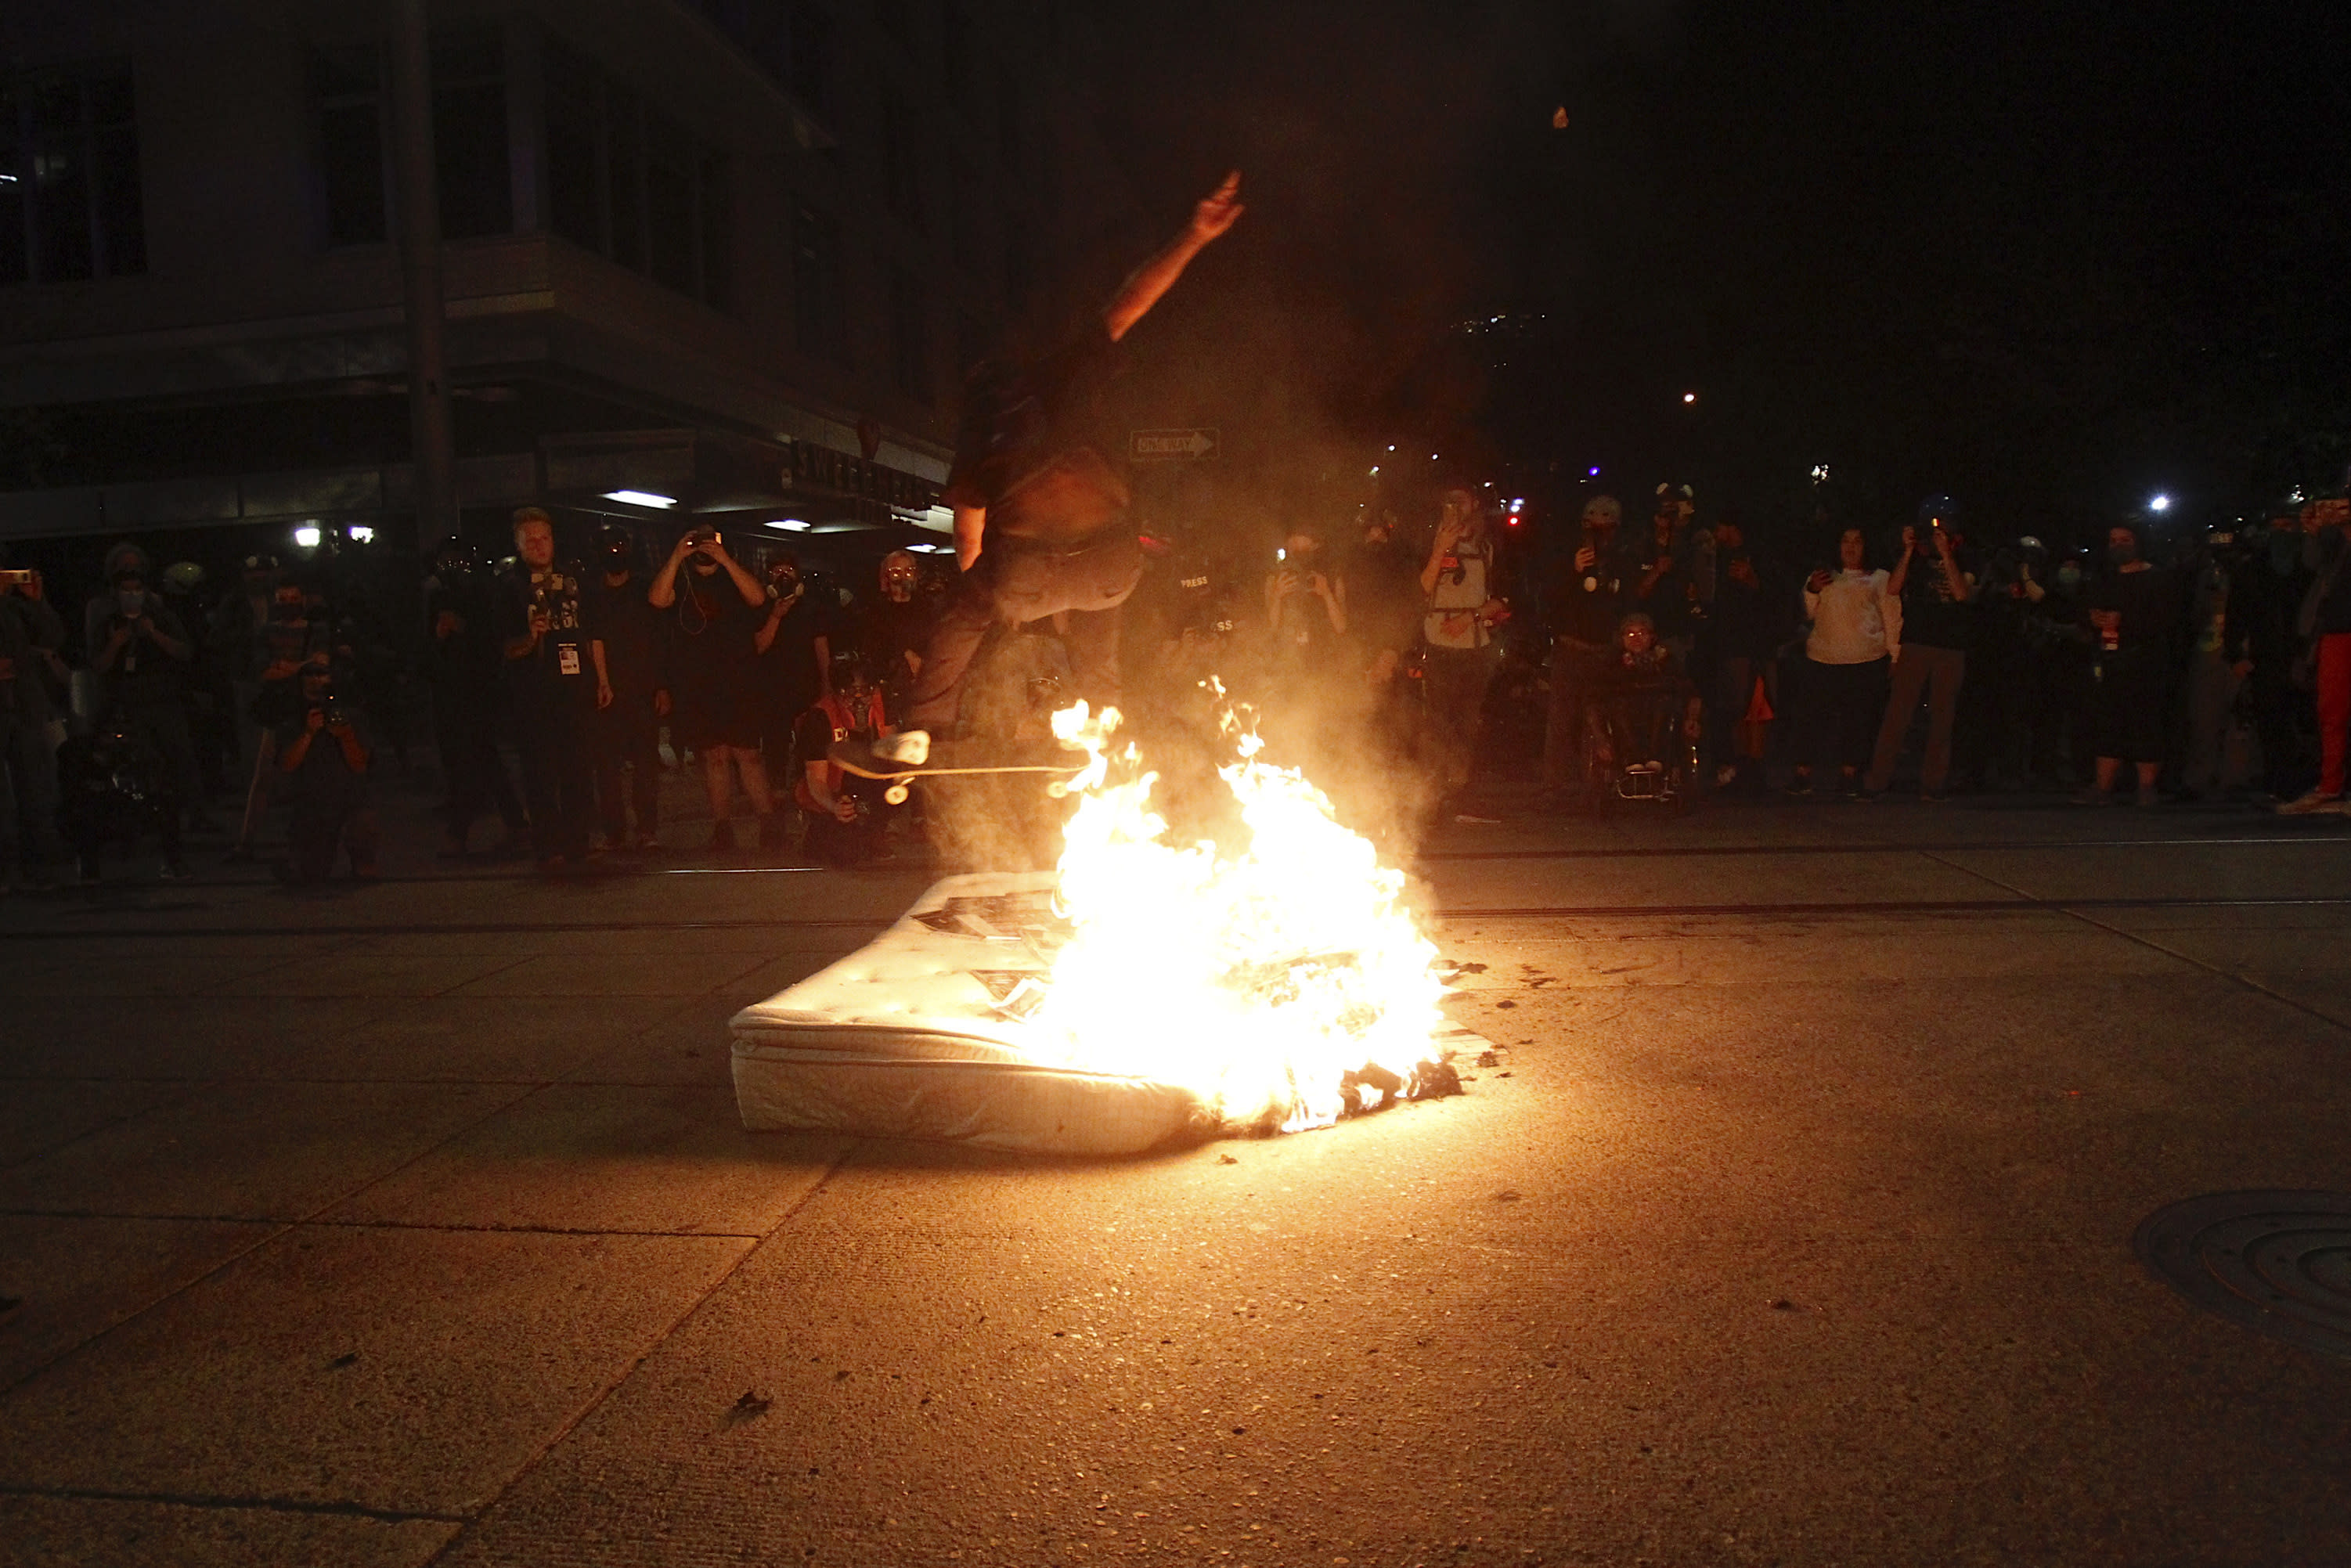 A protester jumps over a fire on his skateboard on Wednesday, Aug. 19, 2020. Protesters in Portland have clashed with federal agents for the first time since July in a demonstration that targeted a U.S. Immigration and Customs Enforcement building.(Sean Meagher/The Oregonian via AP)